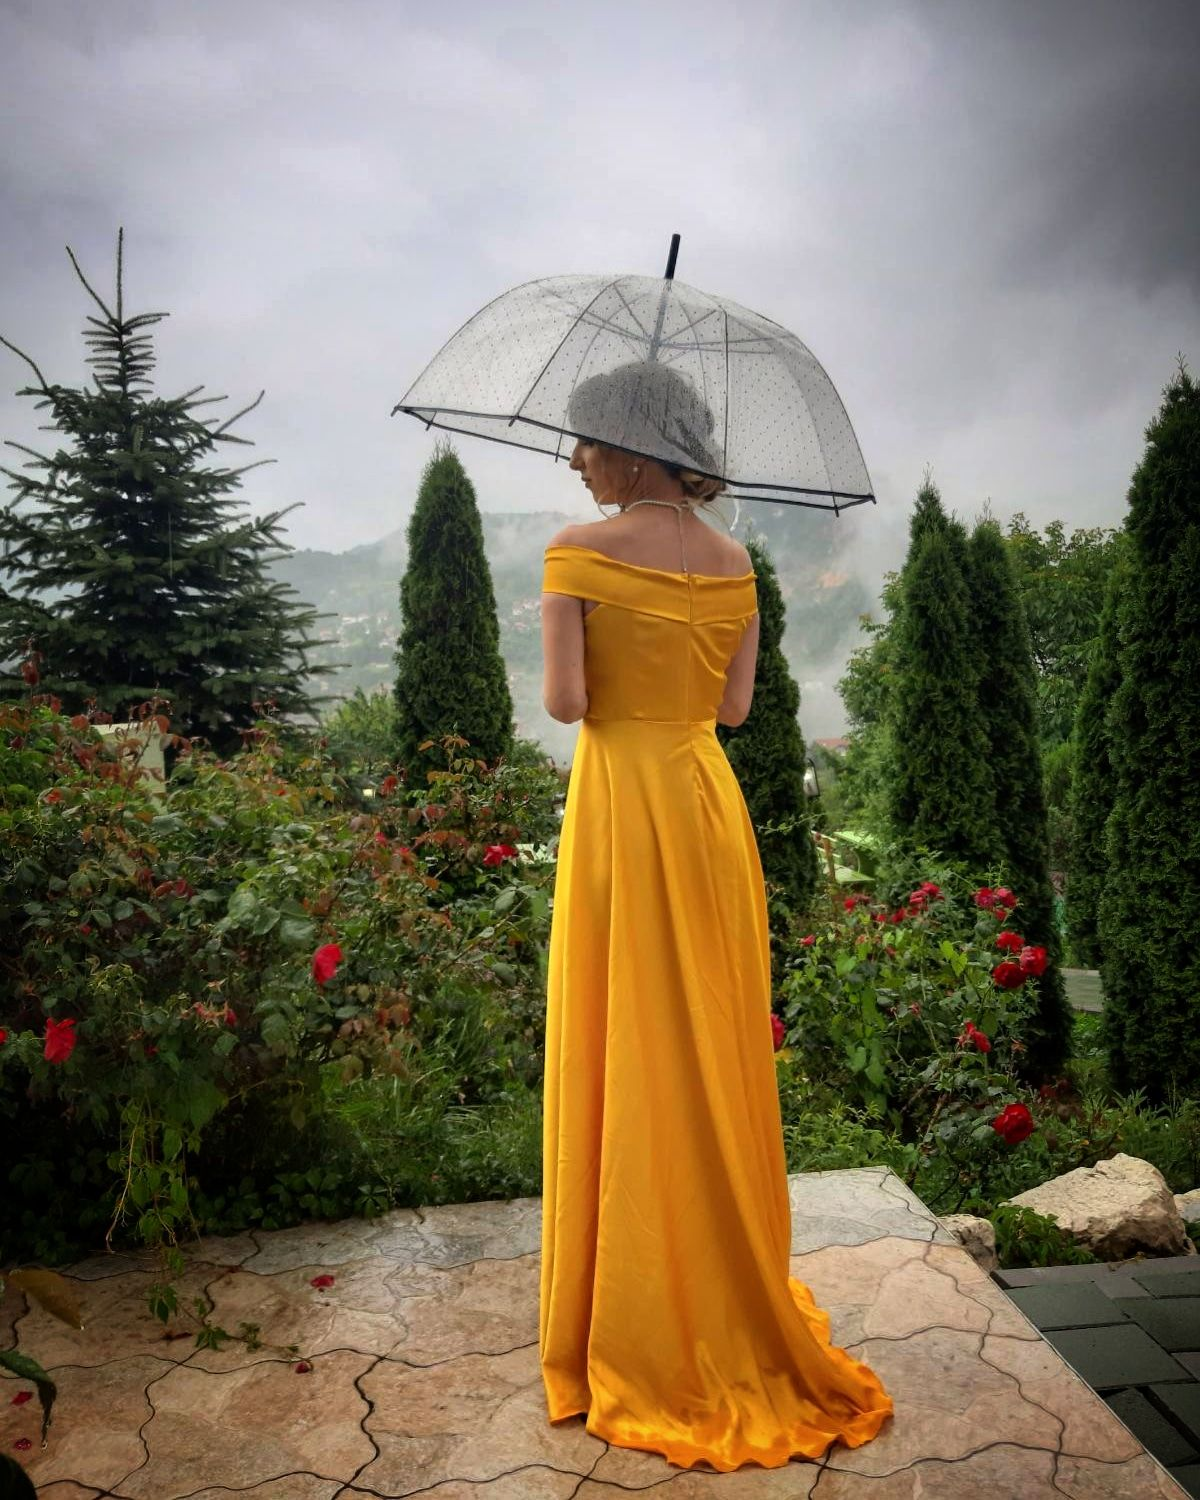 #weddingoutfit #wedding #weddingguest #yellowdress #belle #beautyandthebeast #prideandprejudice #rainyday #rain